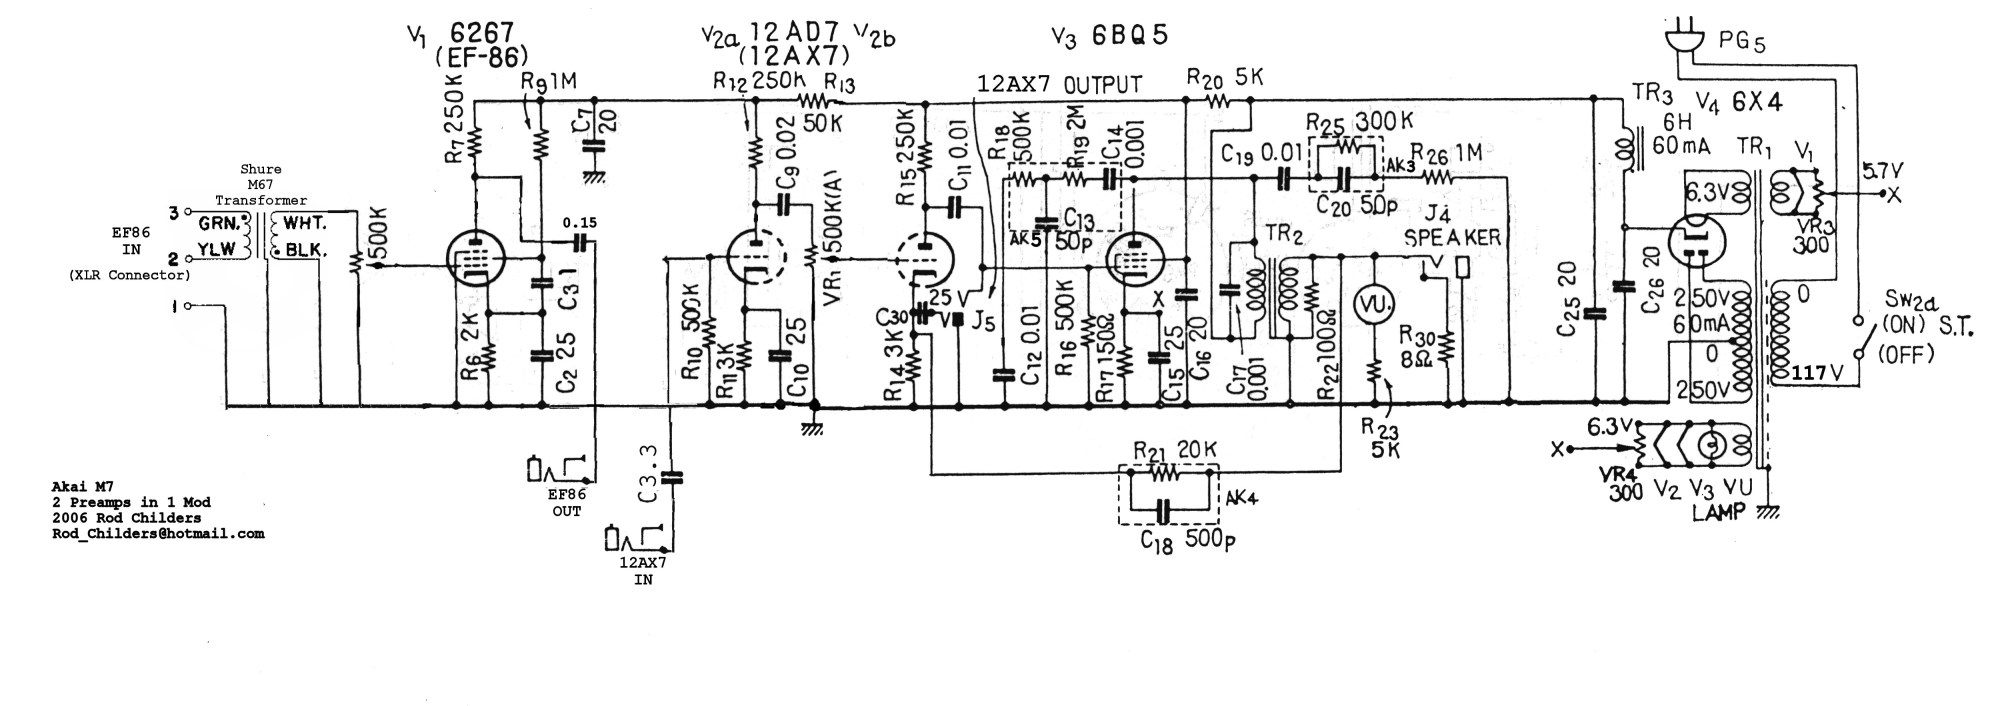 hight resolution of akai m7 right schematic mod 2 preamps in one